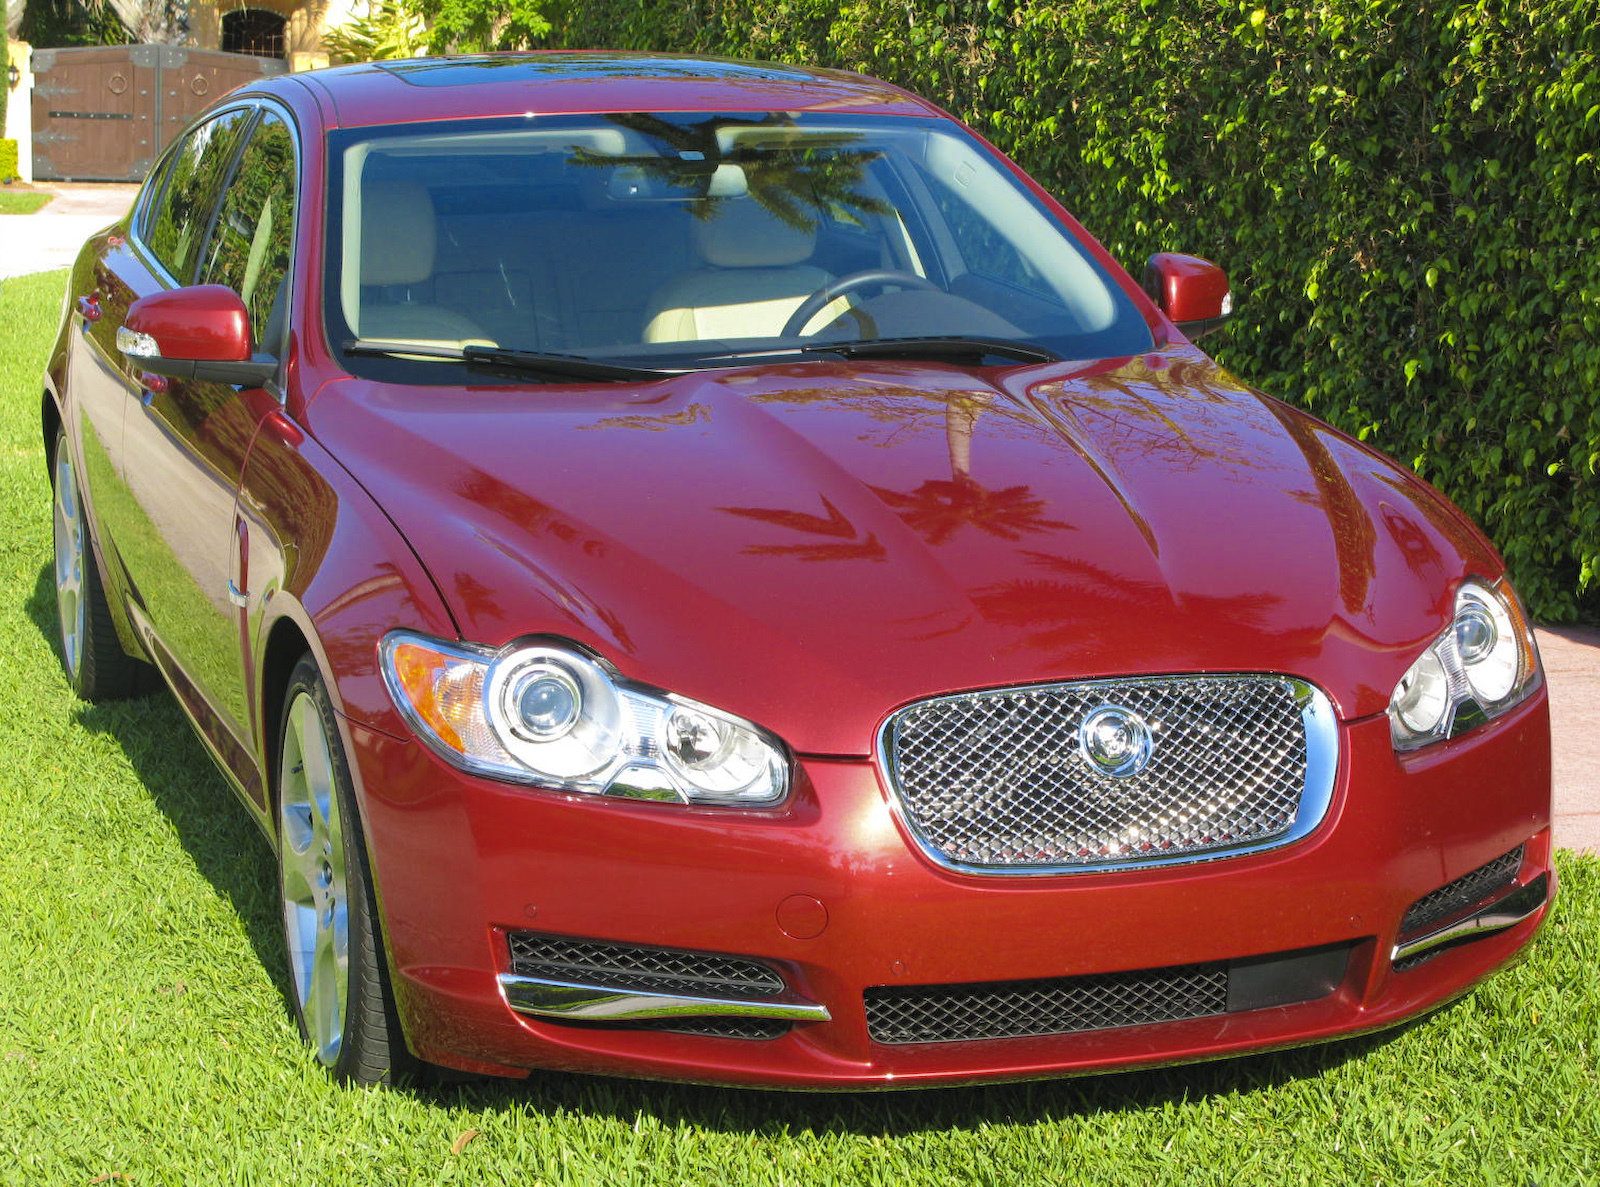 2009 jaguar xf supercharged picture 301915 car review top speed. Black Bedroom Furniture Sets. Home Design Ideas